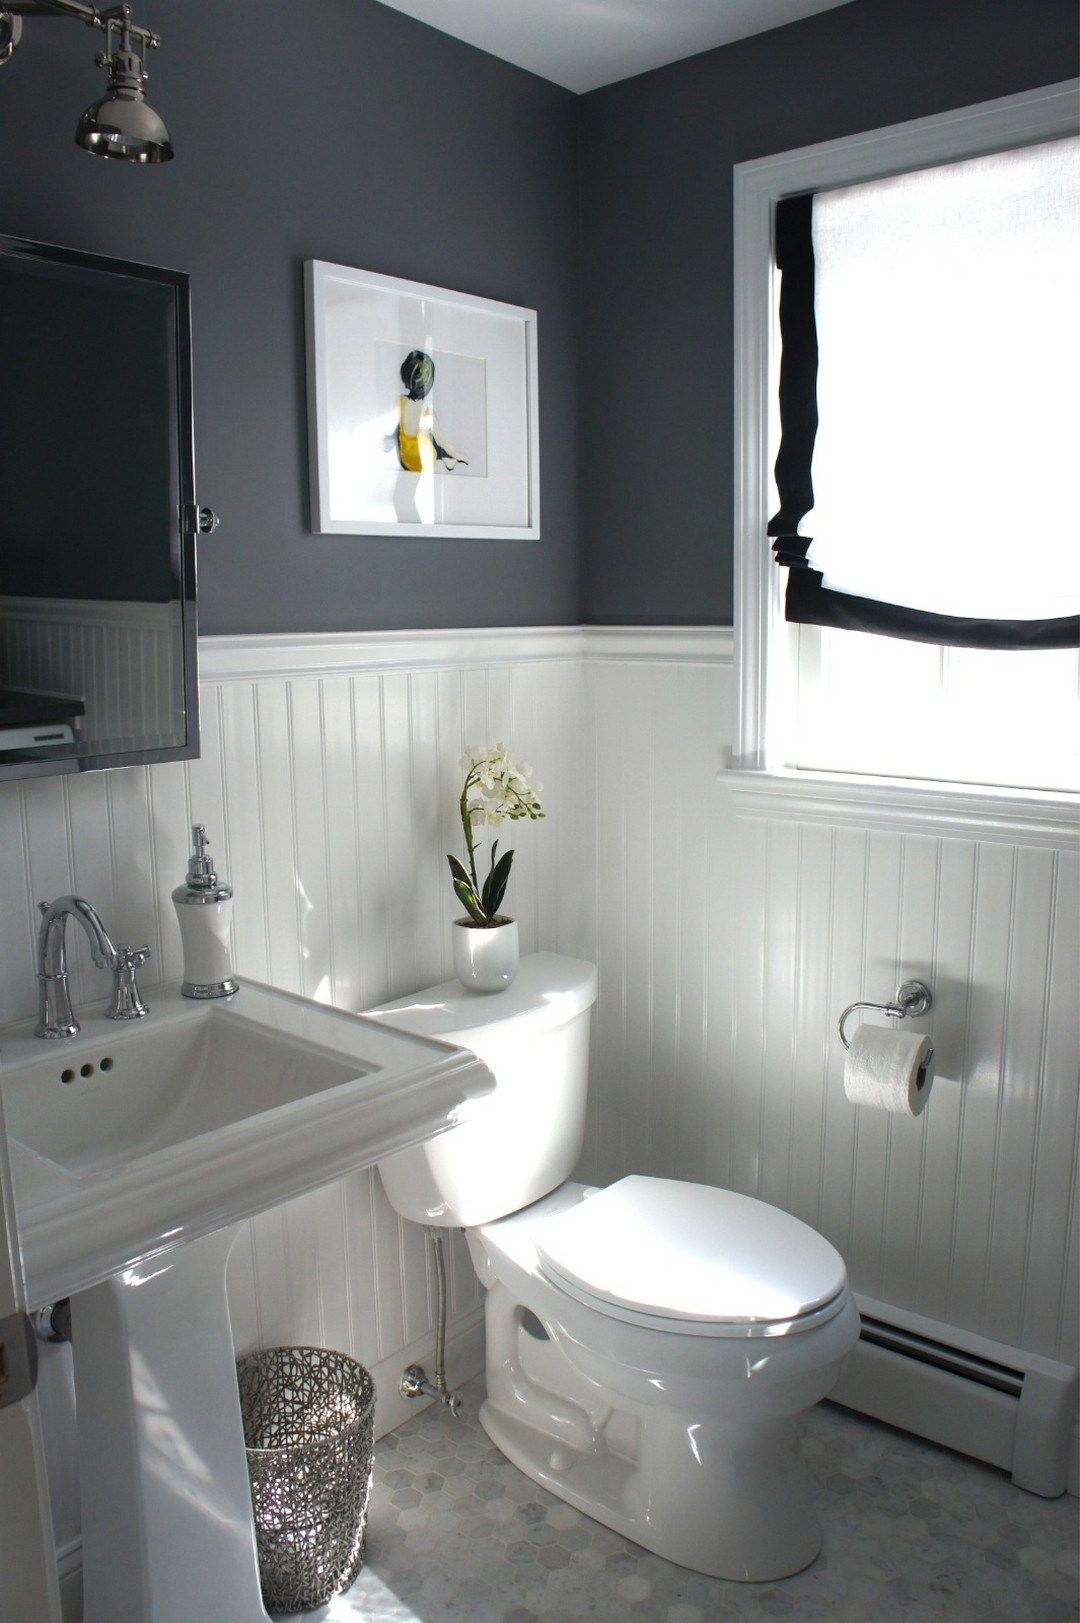 99 small master bathroom makeover ideas on a budget 48 for Master bathroom on a budget